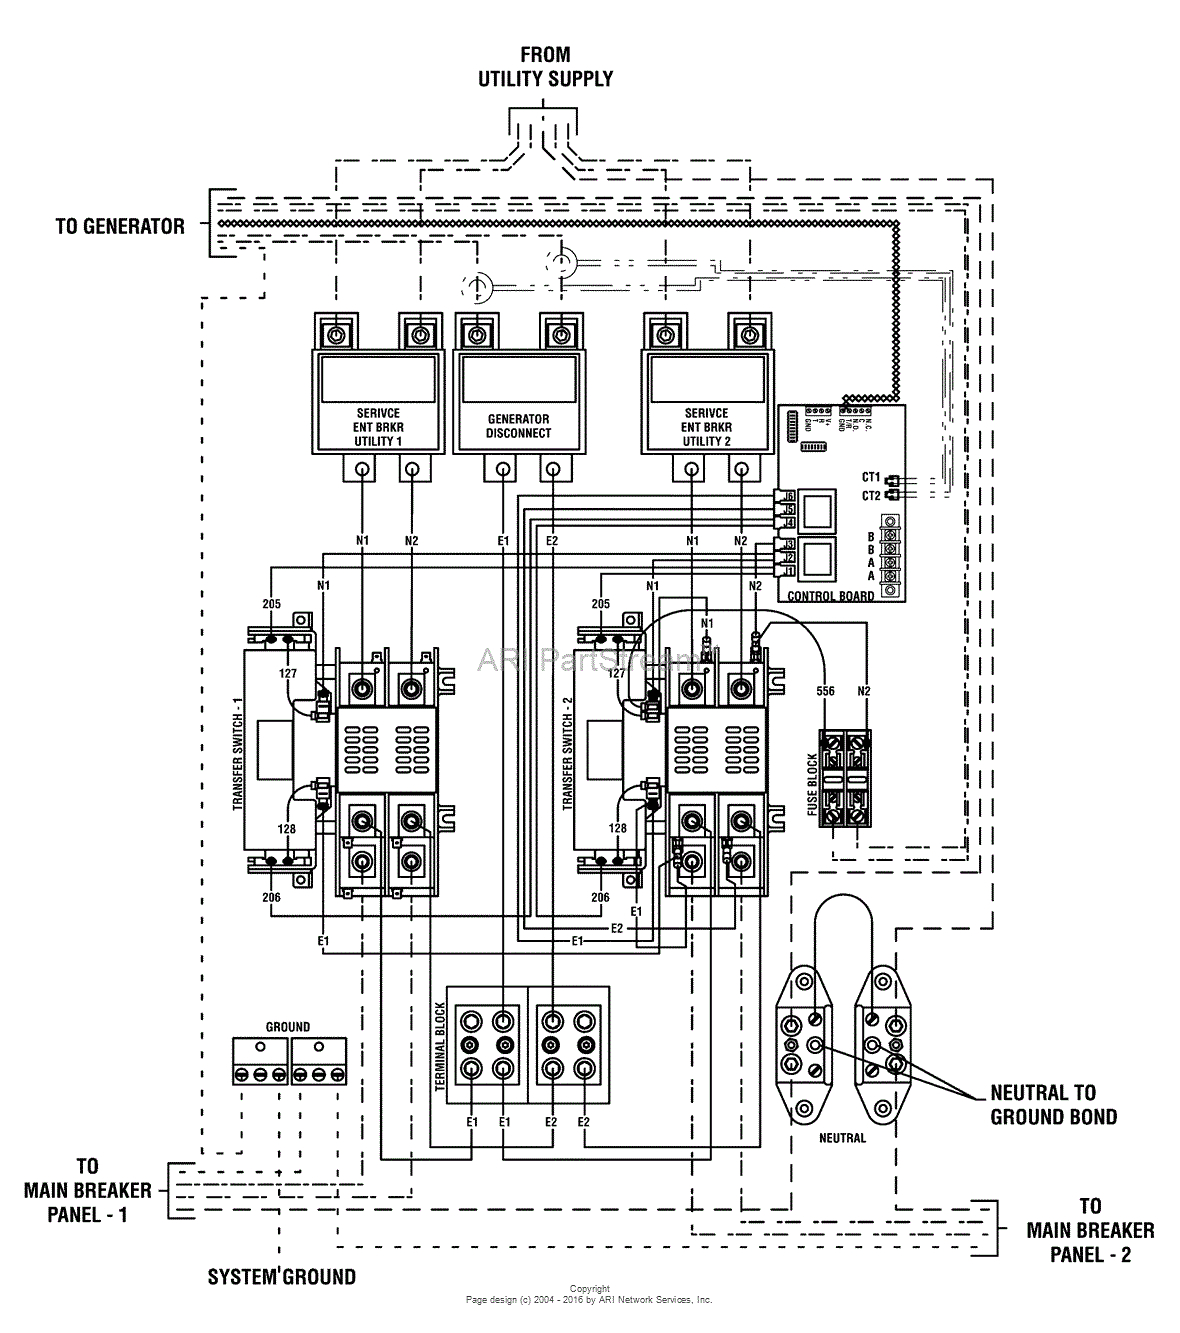 awesome generac transfer switch wiring diagram 27 in mach 460 best at jpg